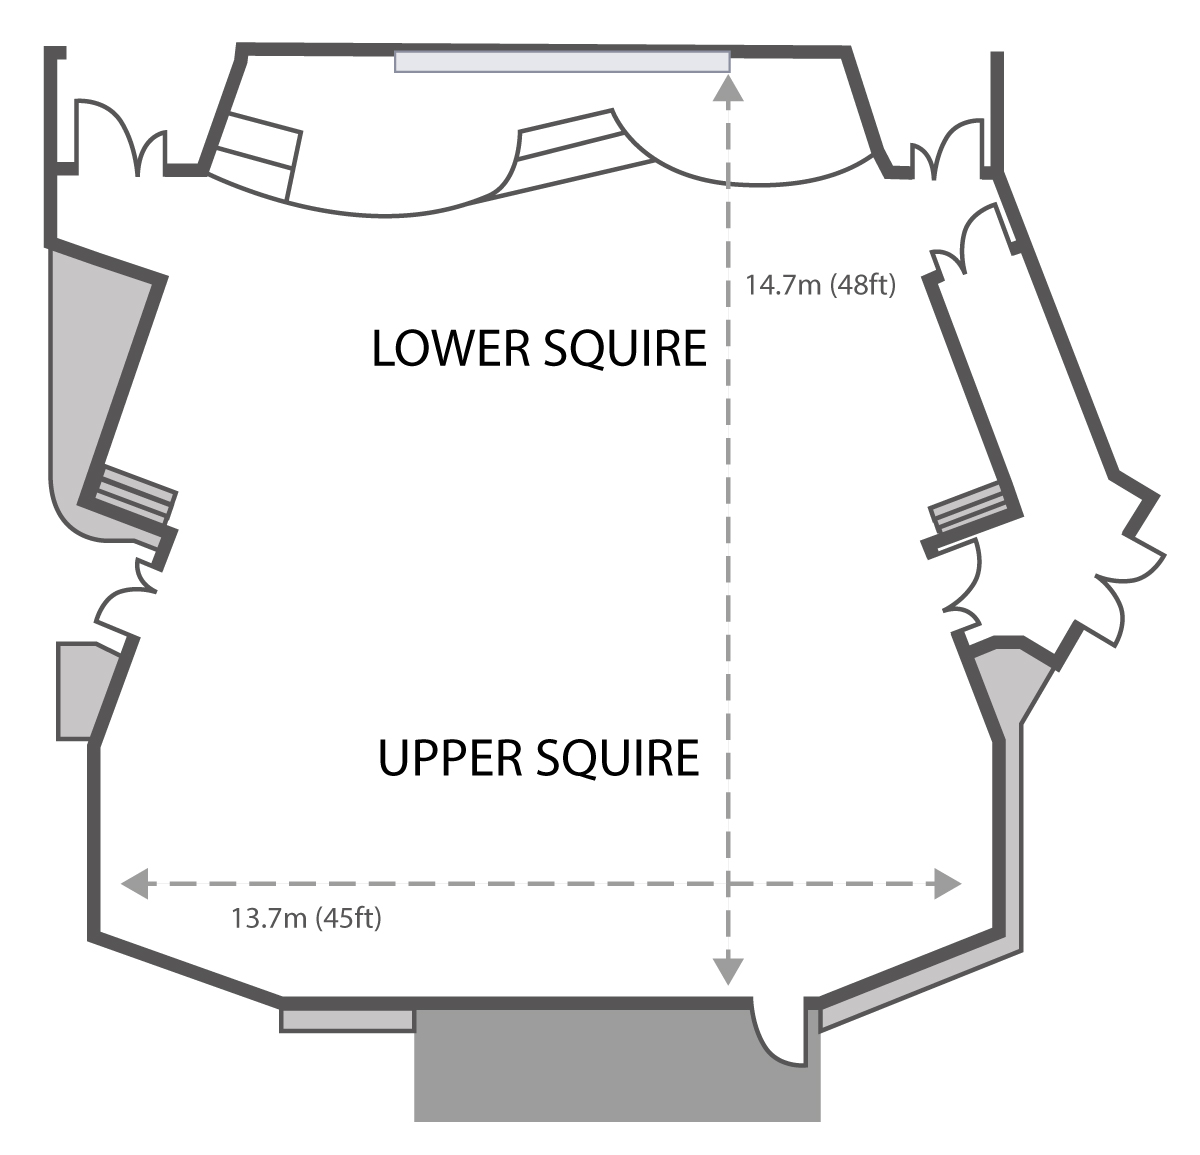 Squire theatre layout for lecture